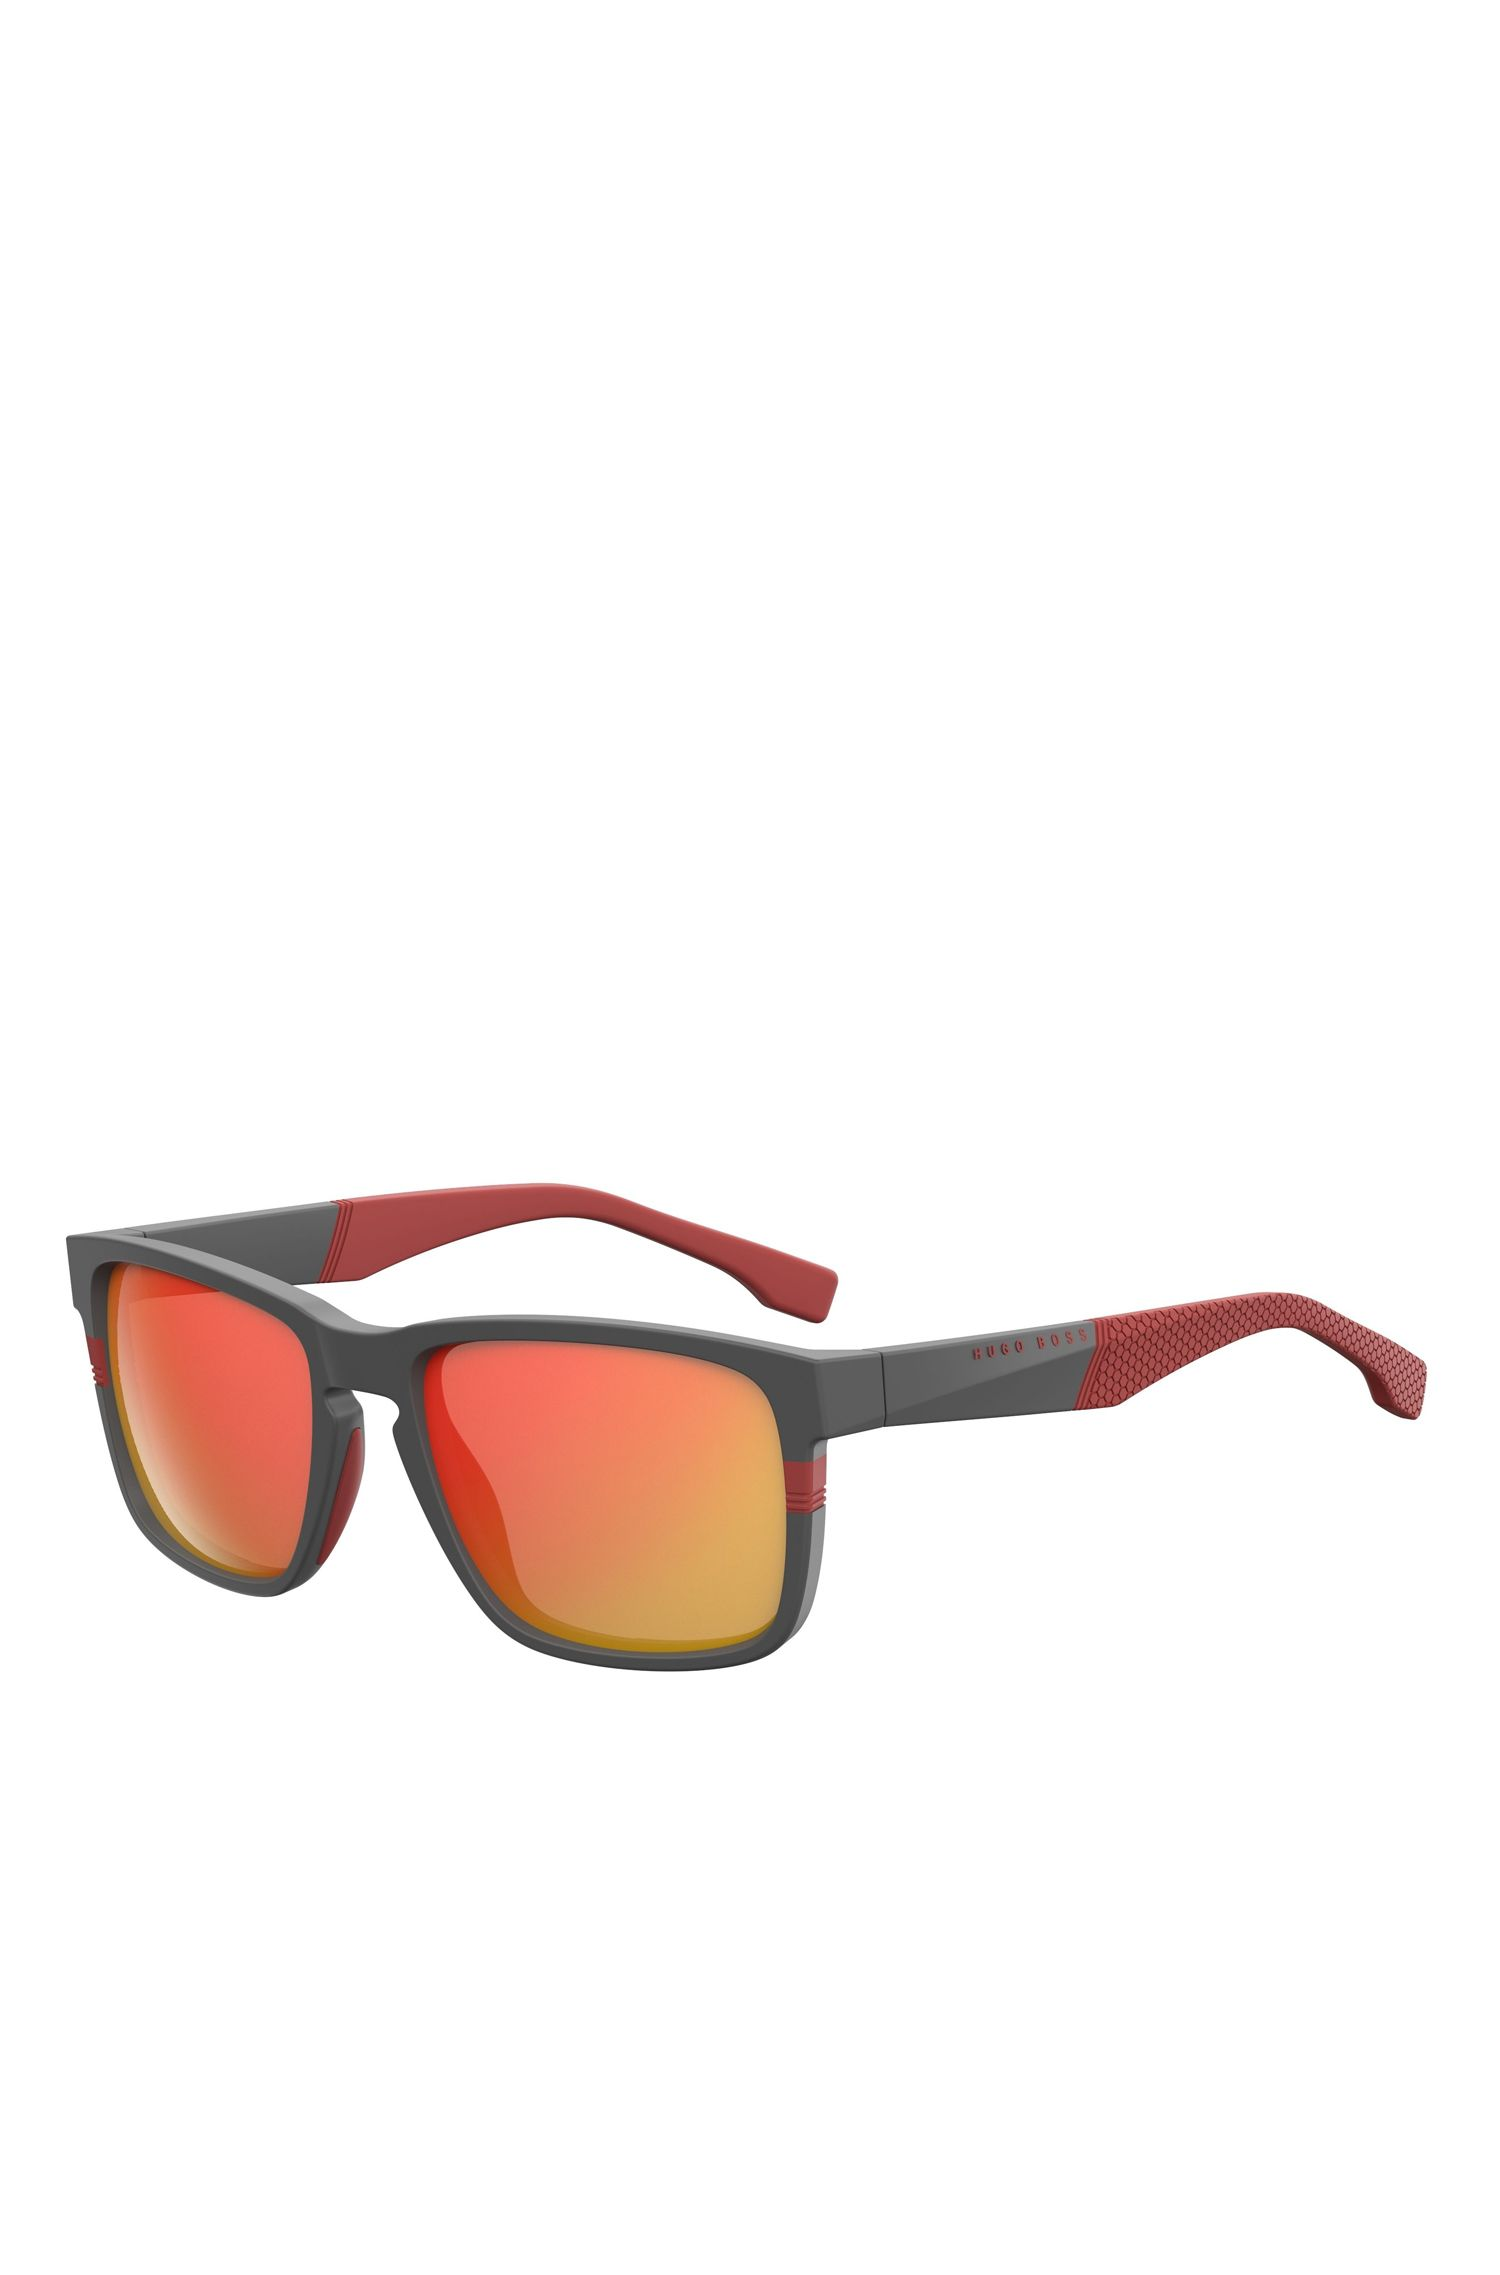 Polarized Oleophobic Acetate Sunglasses | BOSS 0916/S, Assorted-Pre-Pack